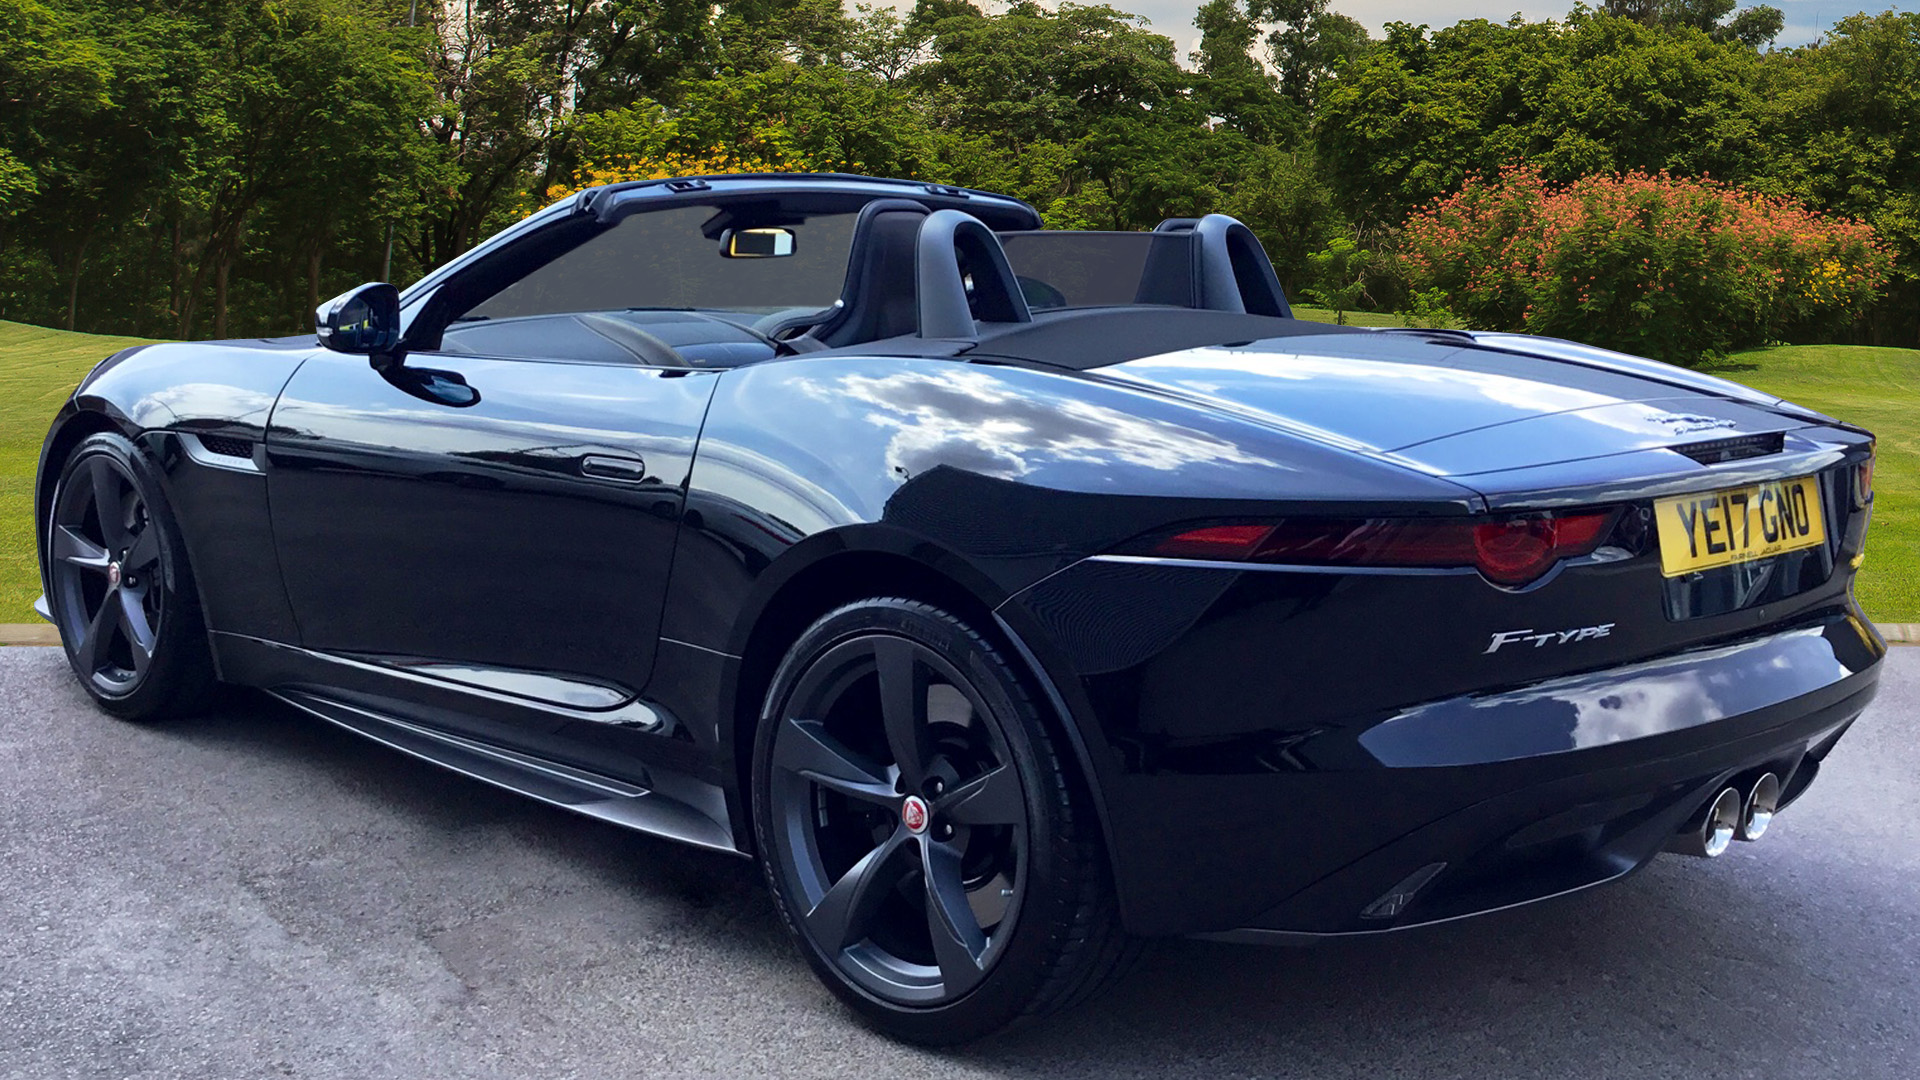 s jaguar trade f private fs convertible sale forum for classifieds fullsizerender buy k type